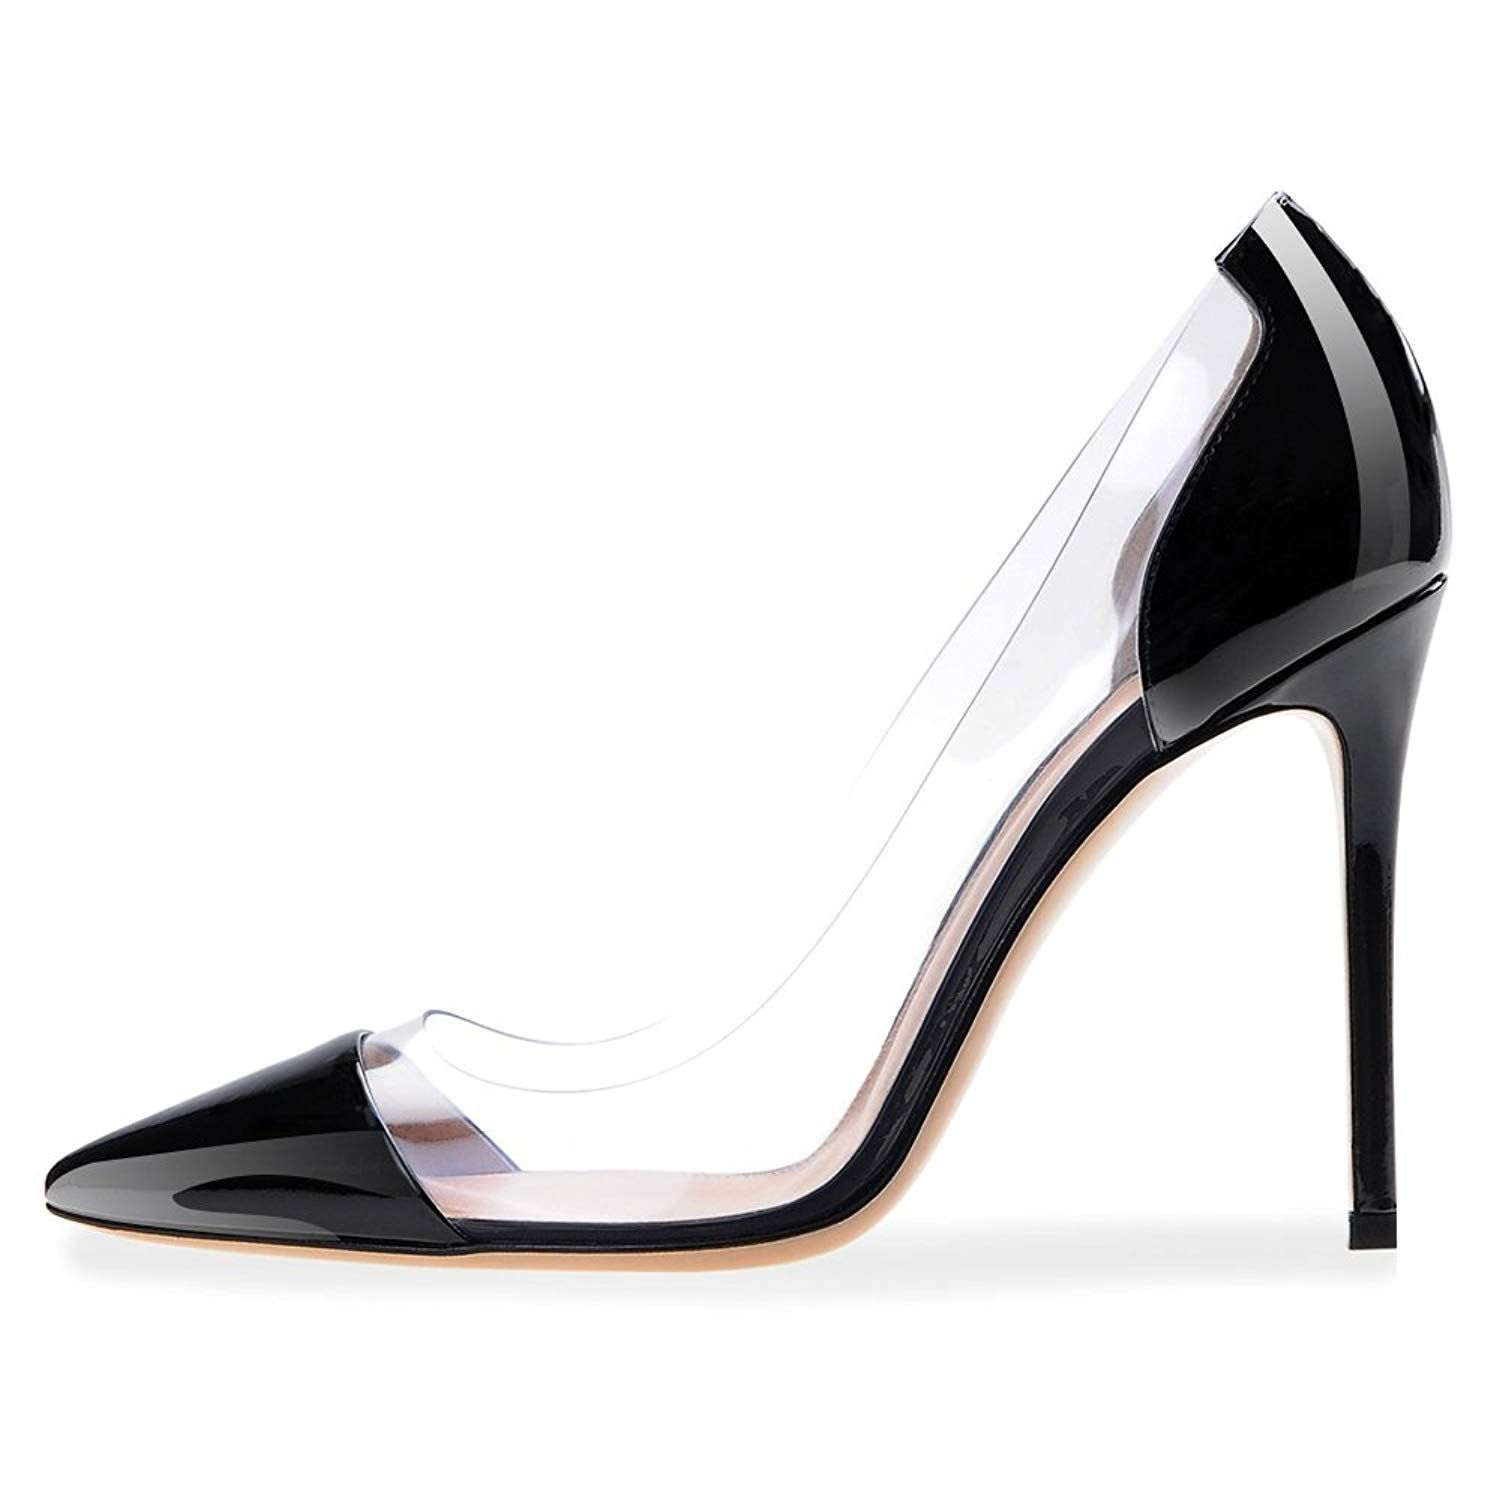 84403e41b0548 Modemoven Women's Pointed Toe Transparent Heels Patent Leather Dress ...